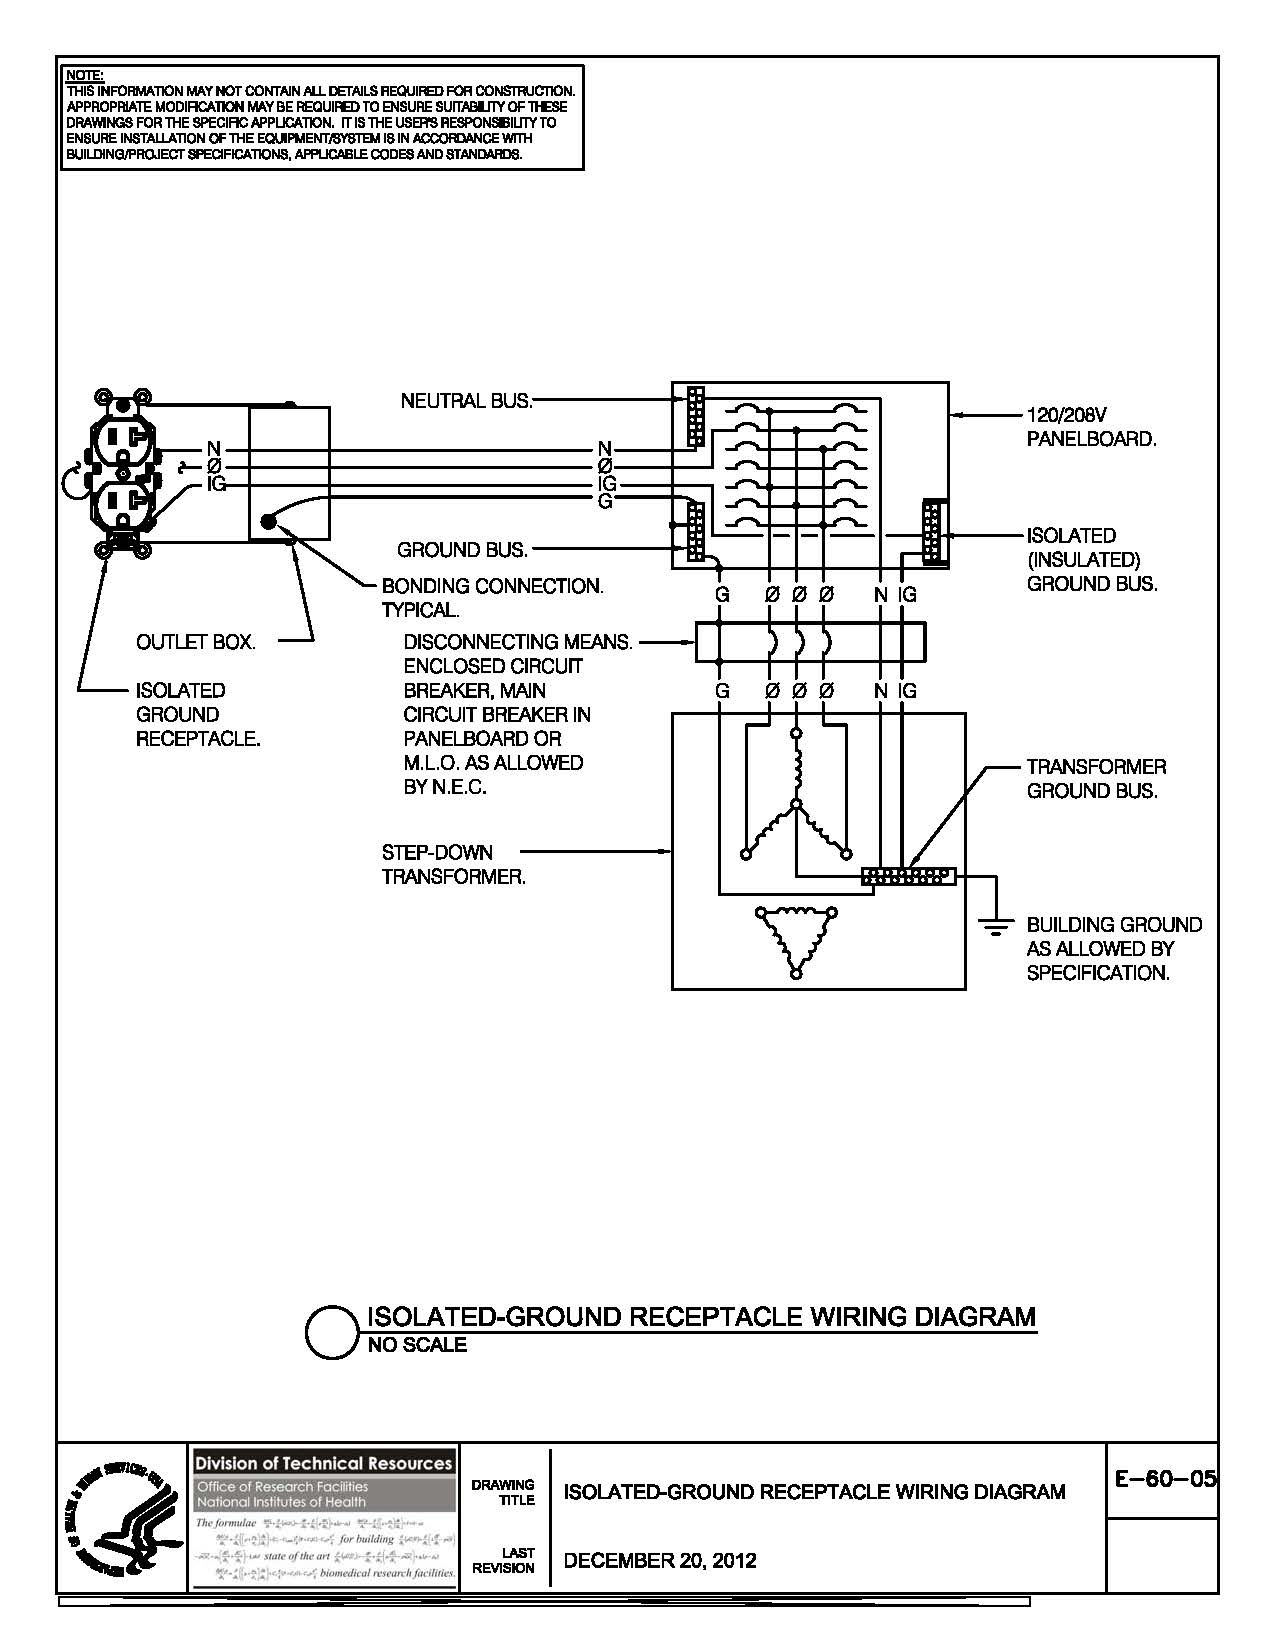 find out here little giant condensate pump wiring diagram ... diversitech condensate pump wiring diagram #14